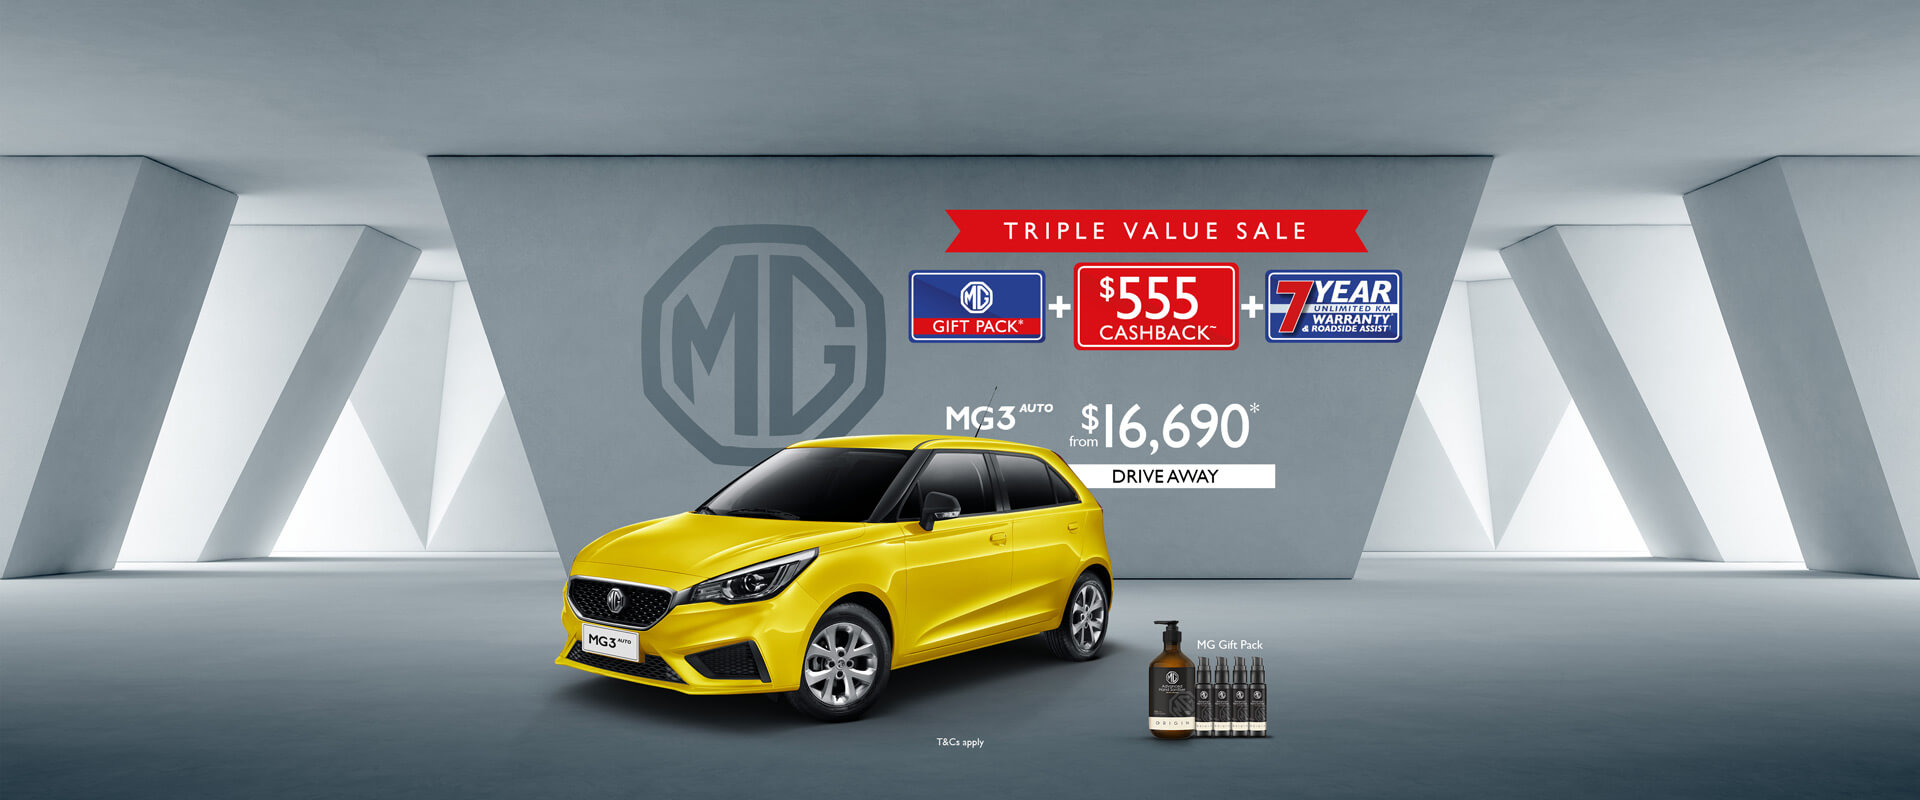 MG MG3 Triple Value Sale